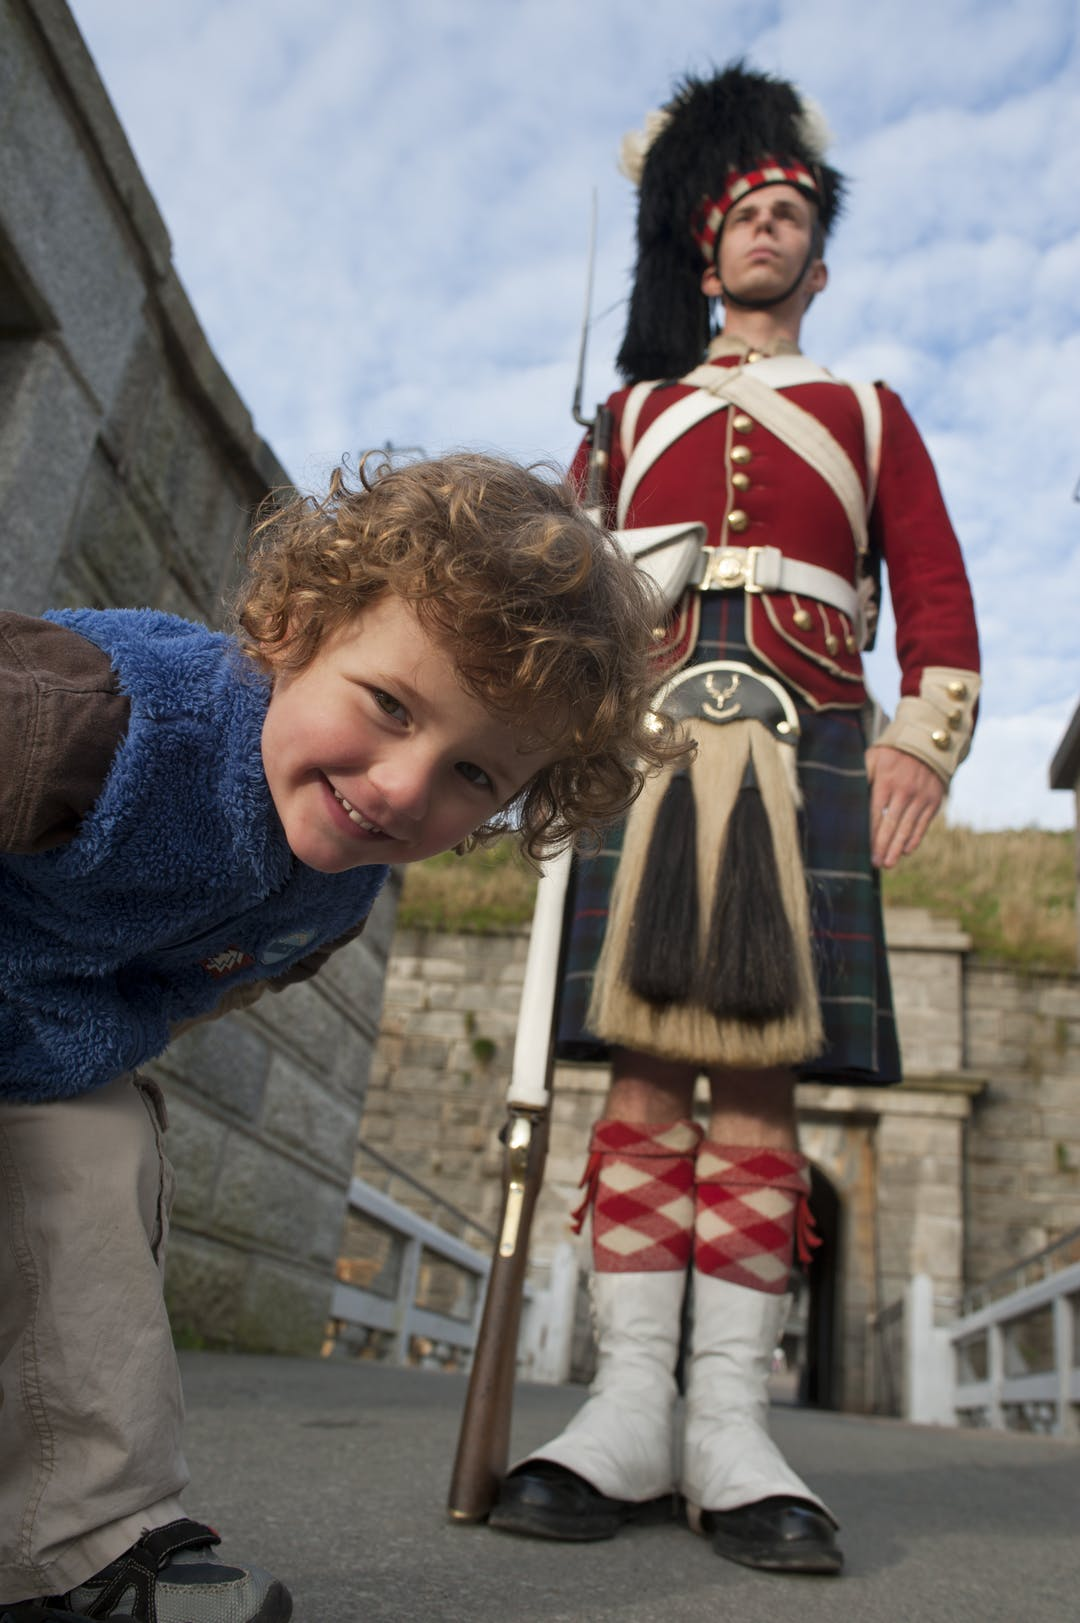 Interpreter portraying a 78th Highlander standing sentry at the front gate of the Halifax Citadel with a young boy checking things out.